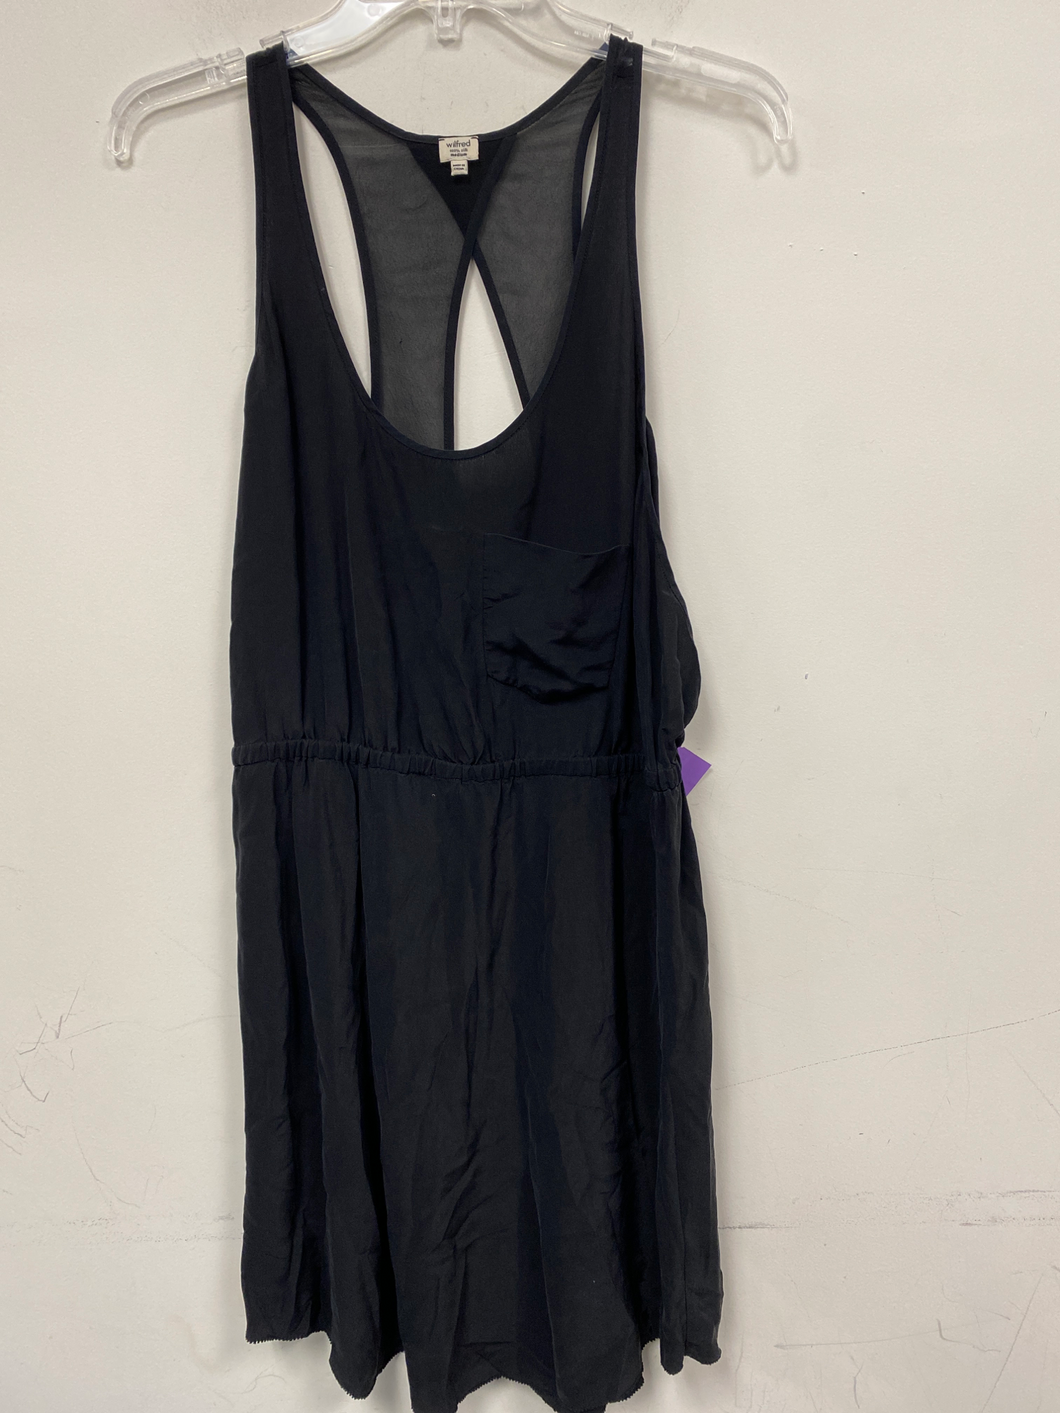 Wilfred Dress Size Medium